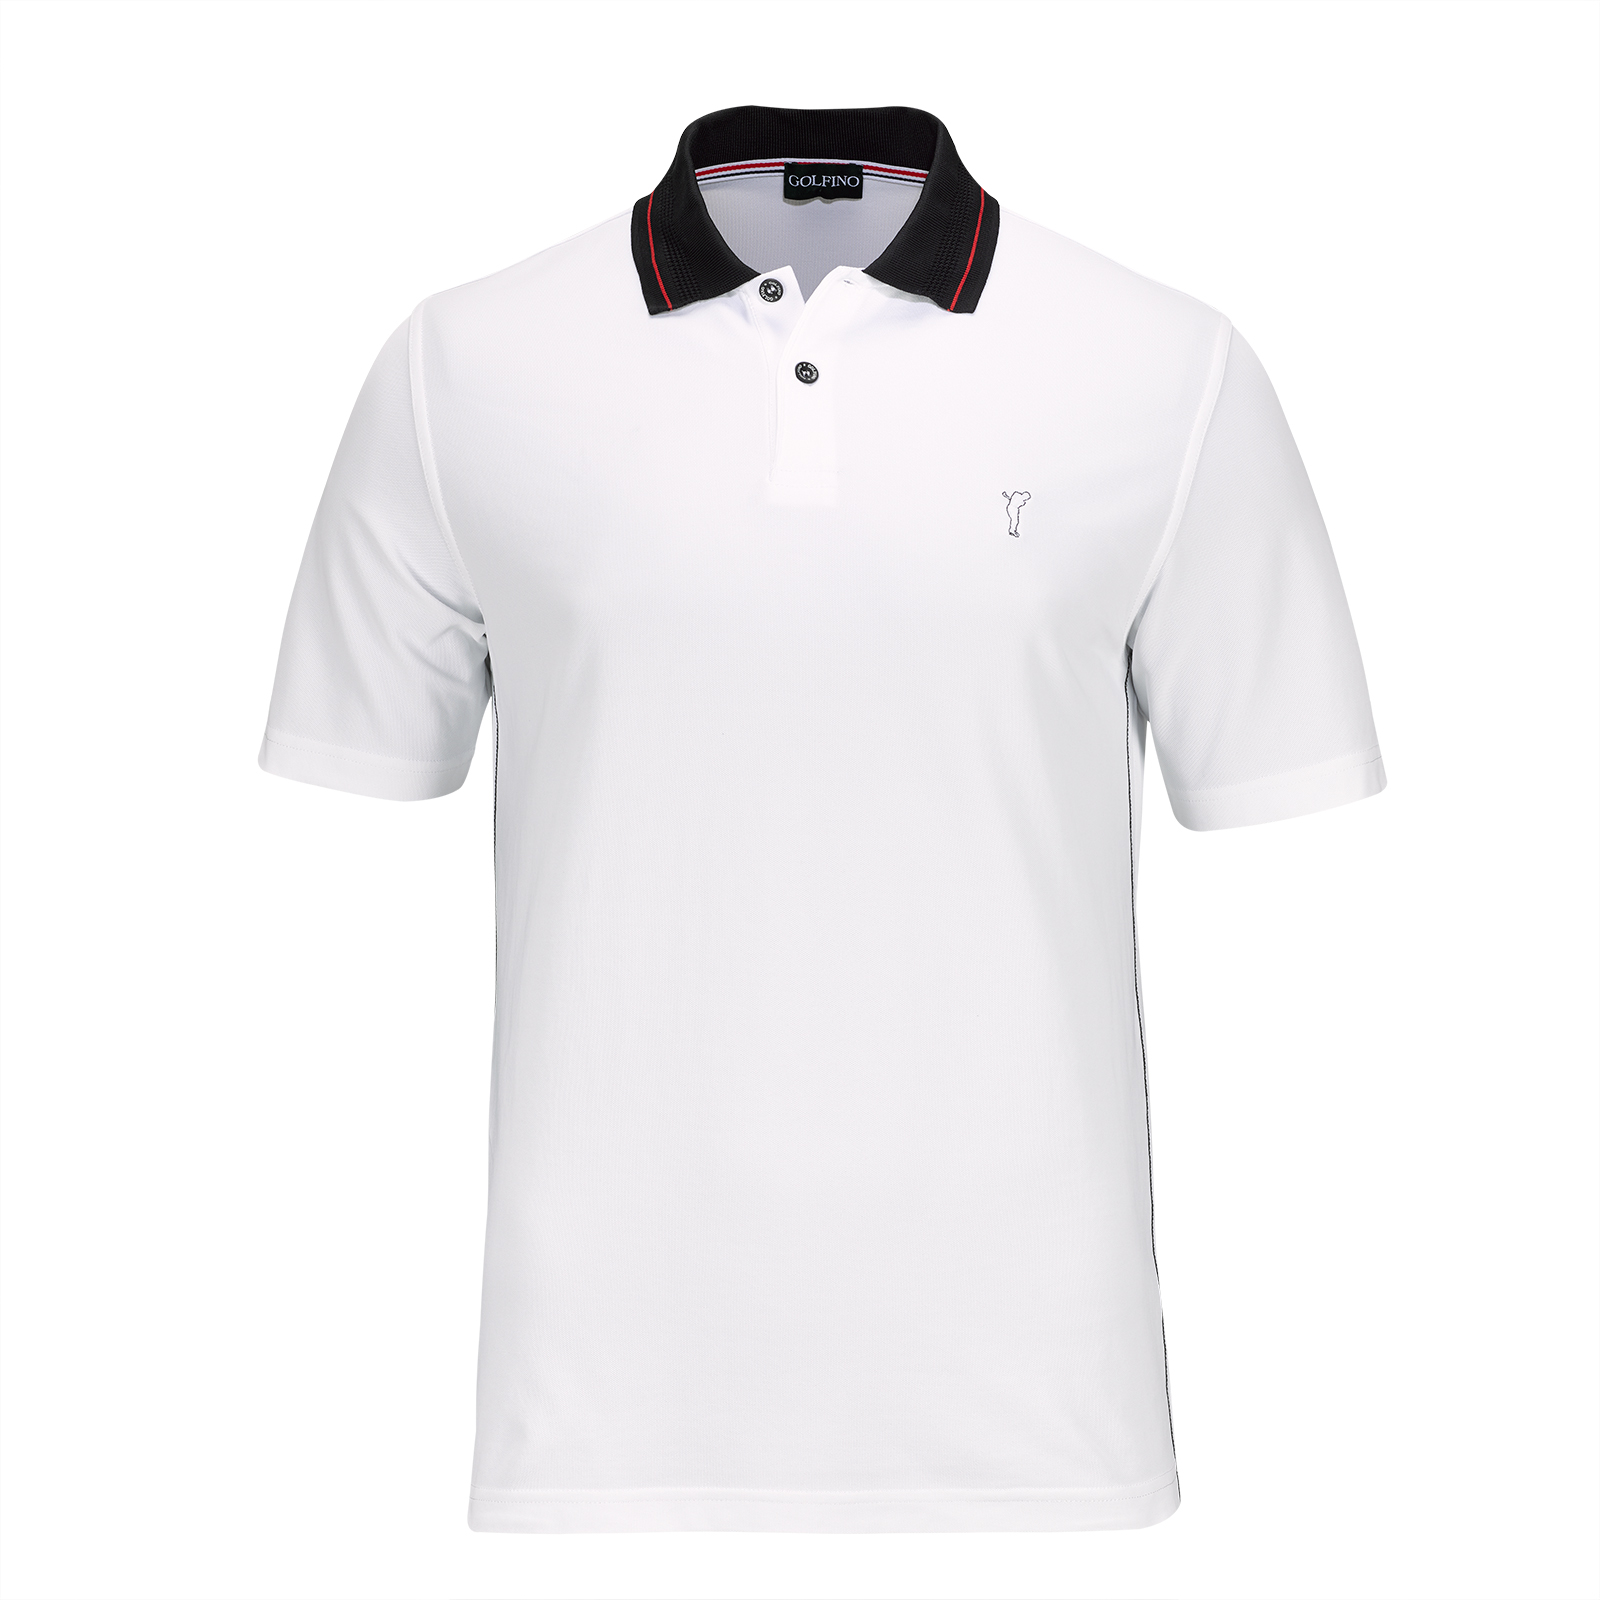 Extra dry Red Performance short sleeve men's golf piqué polo with soft feel